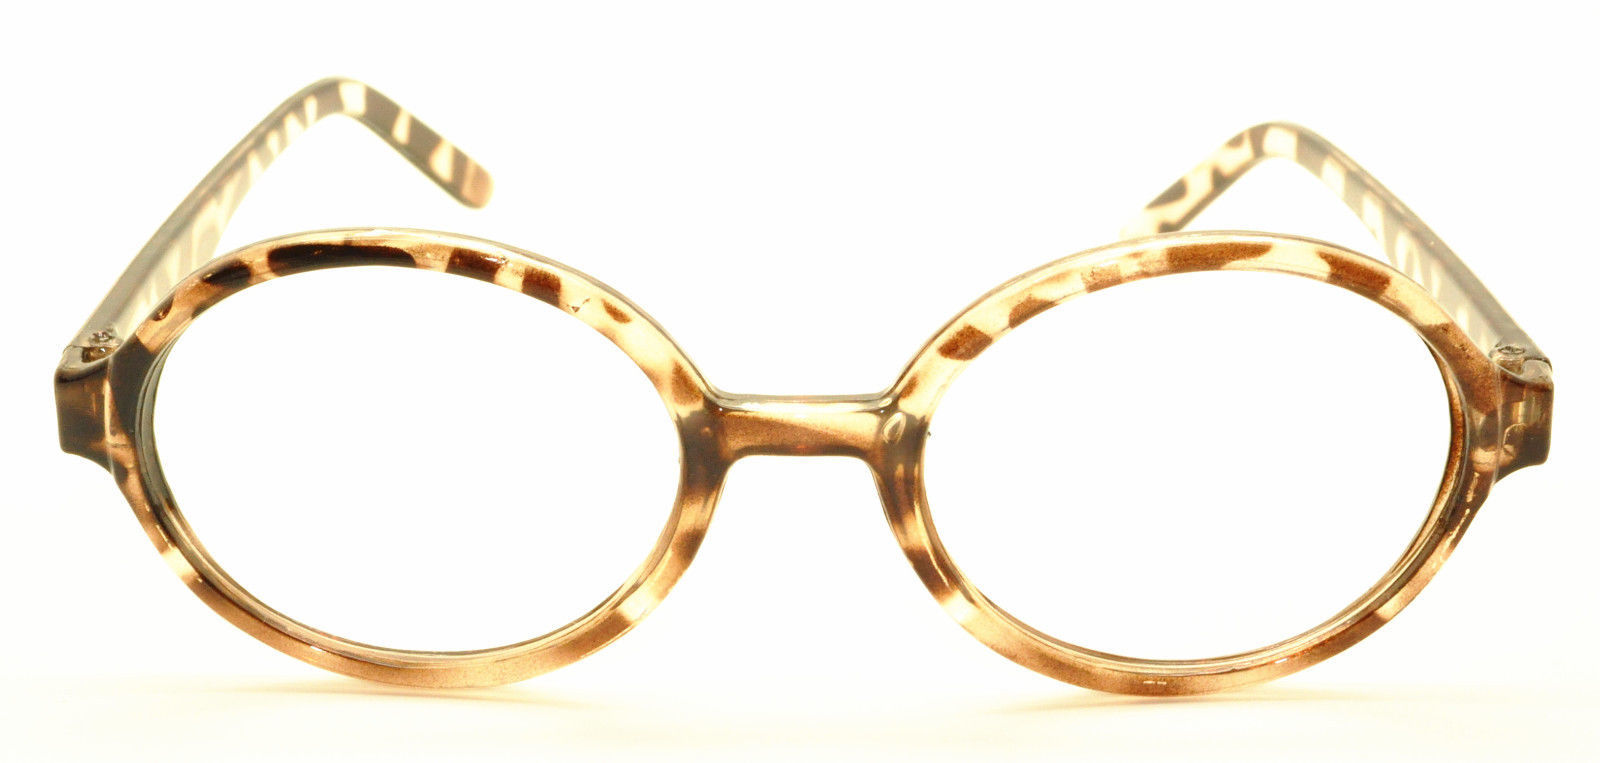 Geek Nerd Style Oval Round Shape Style Glasses Frames NO LENS Wizard Costume image 15